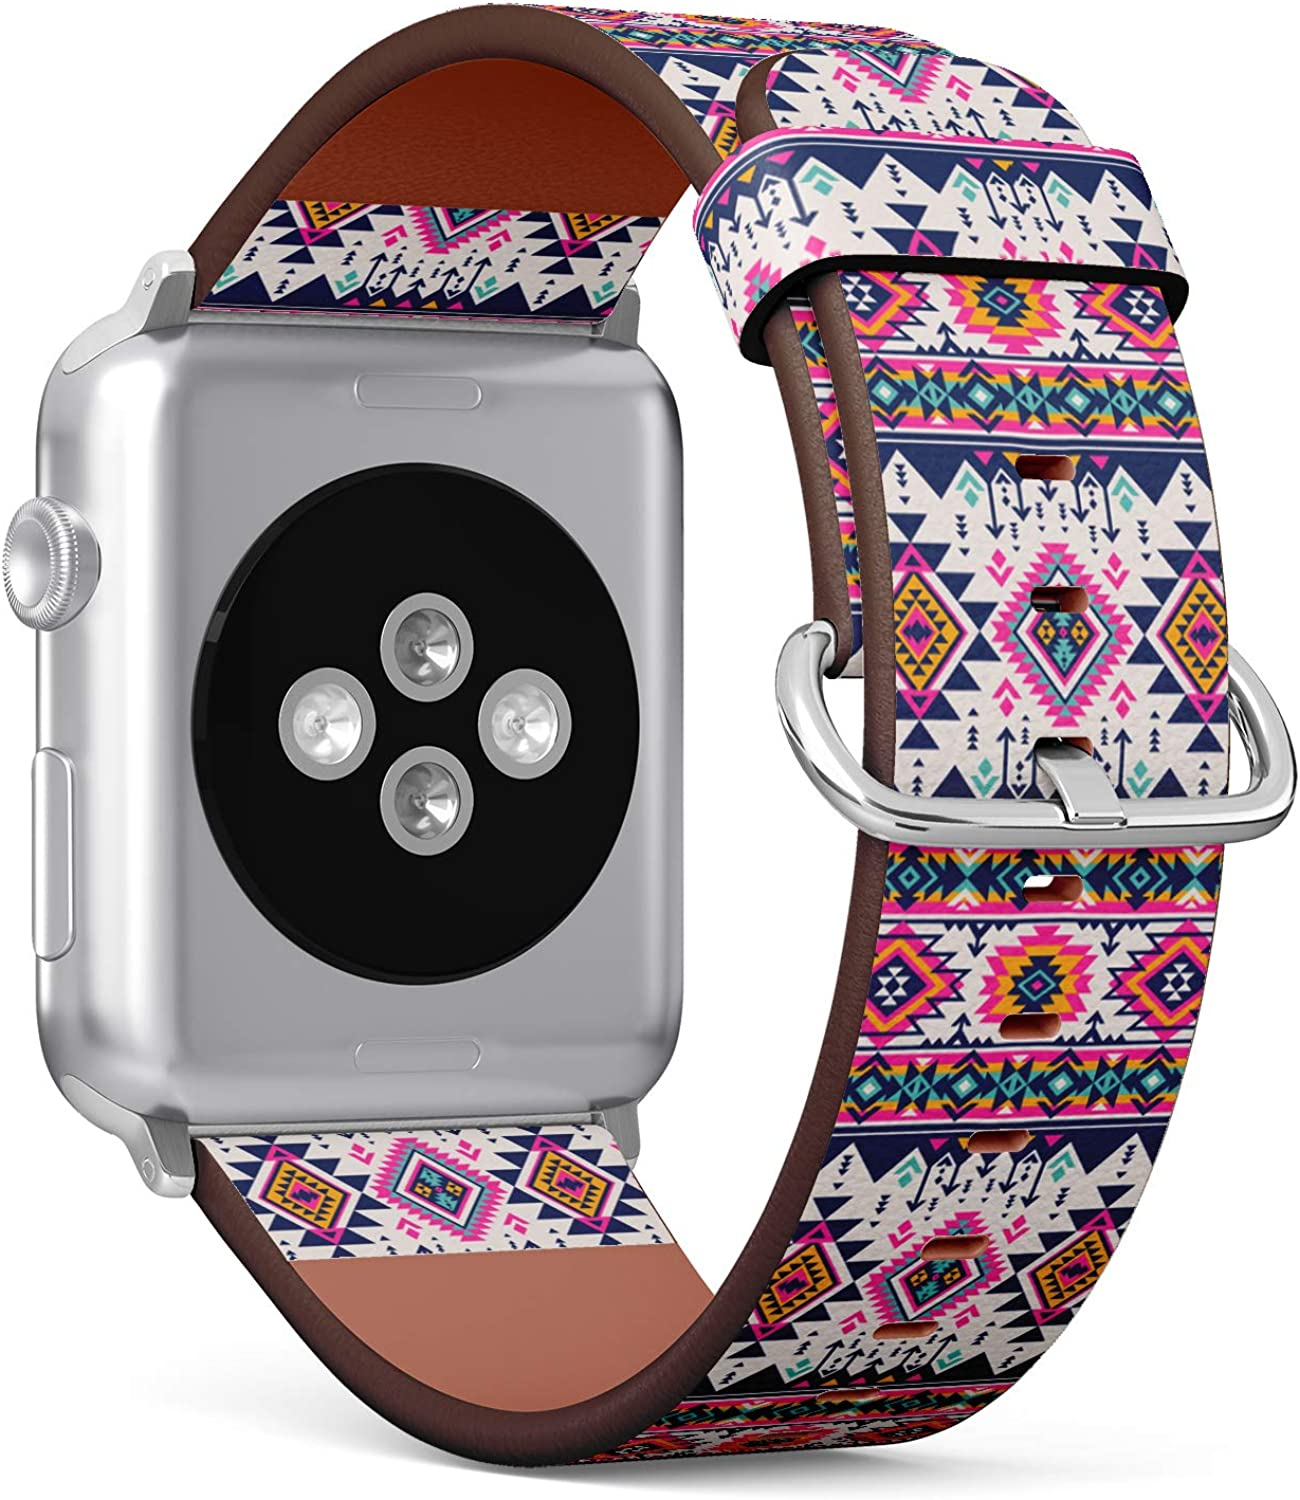 (Tribal Navajo Pattern with Aztec Fancy Abstract Geometric Art) Patterned Leather Wristband Strap for Apple Watch Series 4/3/2/1 gen,Replacement for iWatch 42mm / 44mm Bands